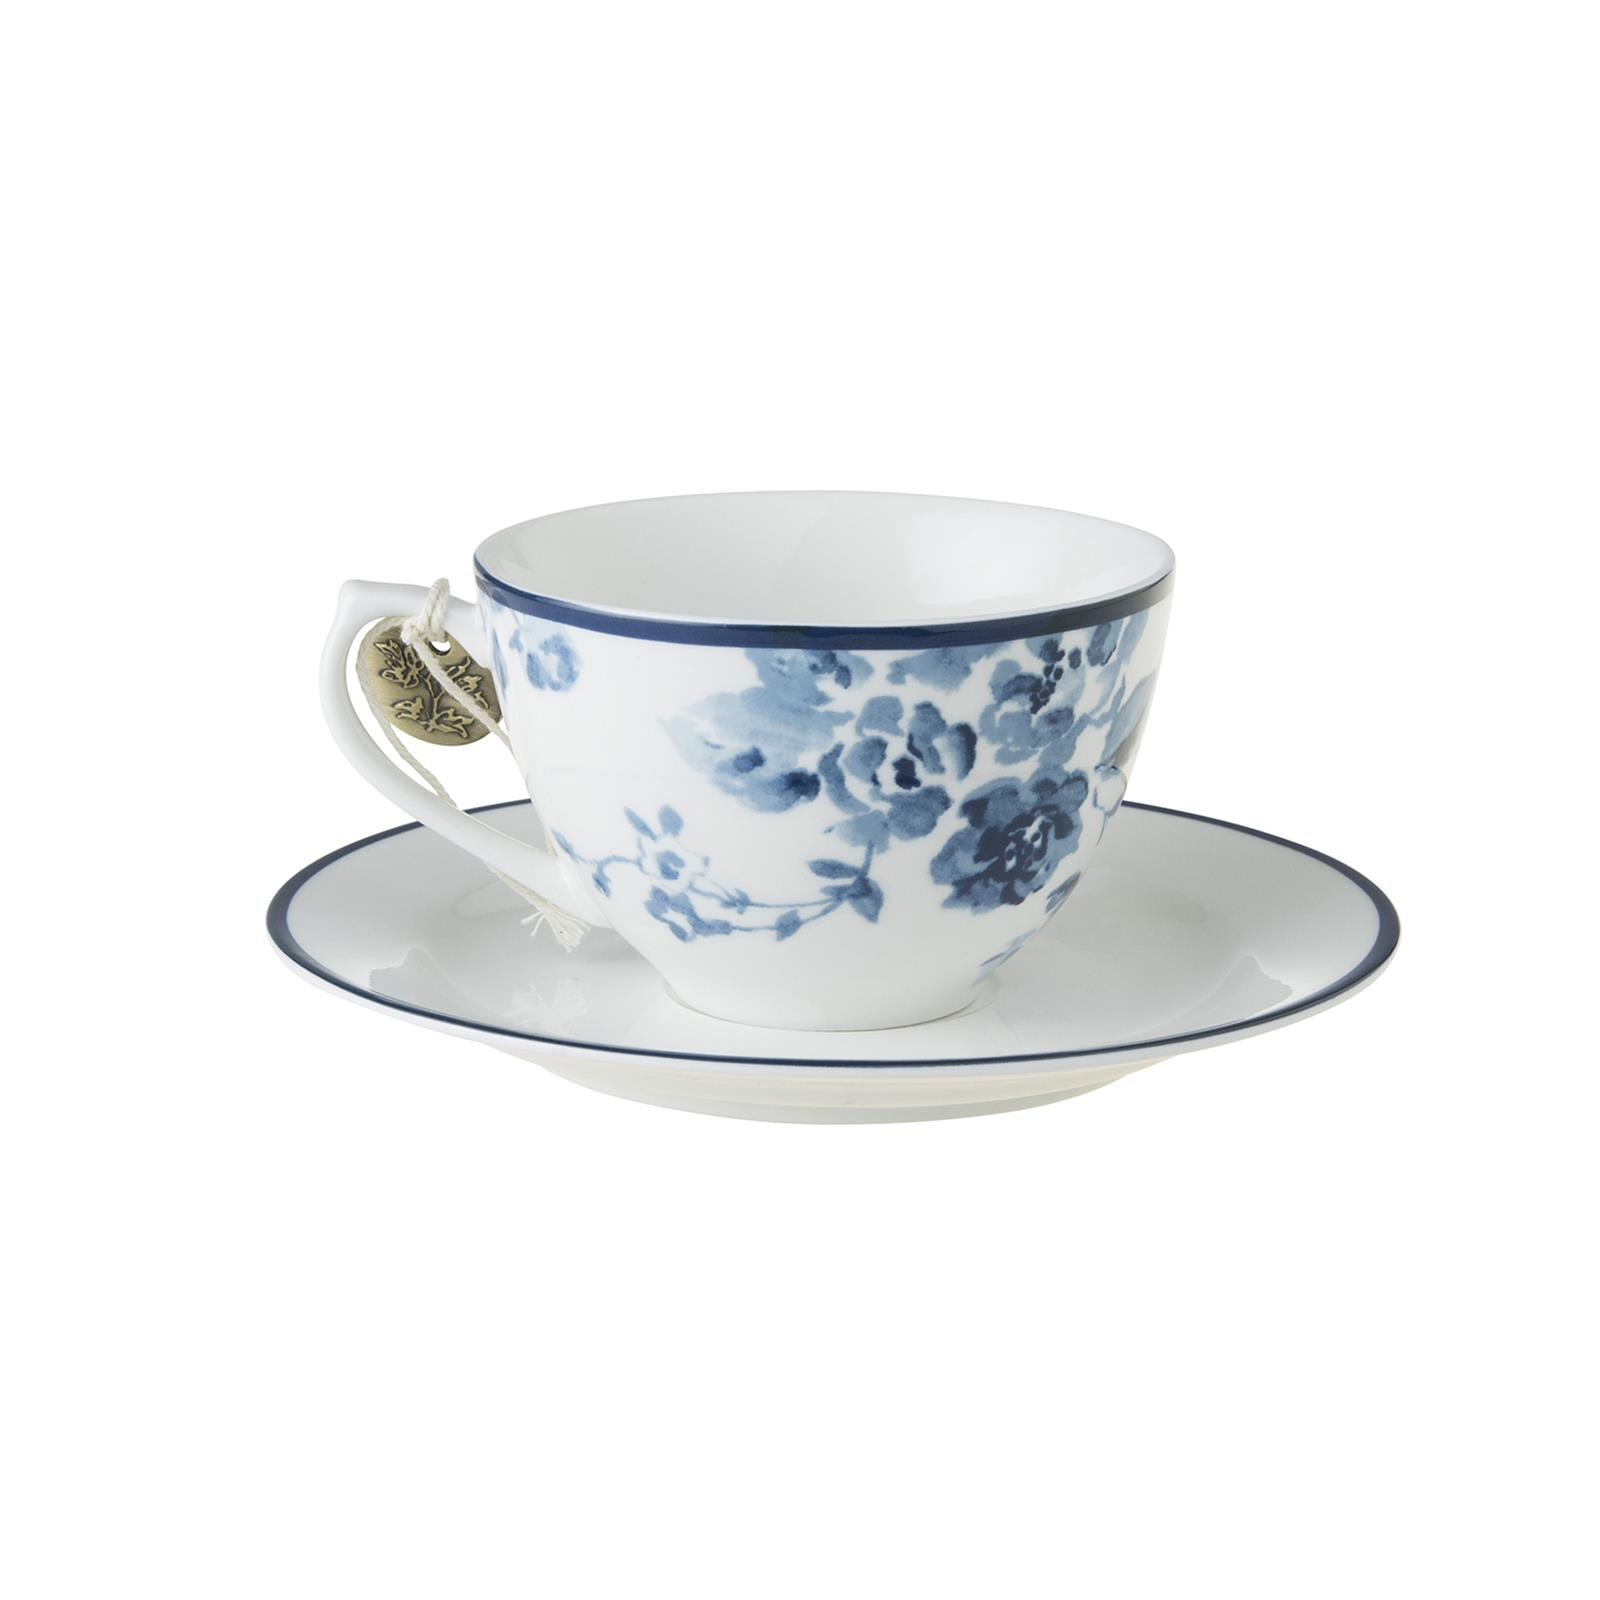 laura ashley cappuccino tasse und untertasse blueprint. Black Bedroom Furniture Sets. Home Design Ideas